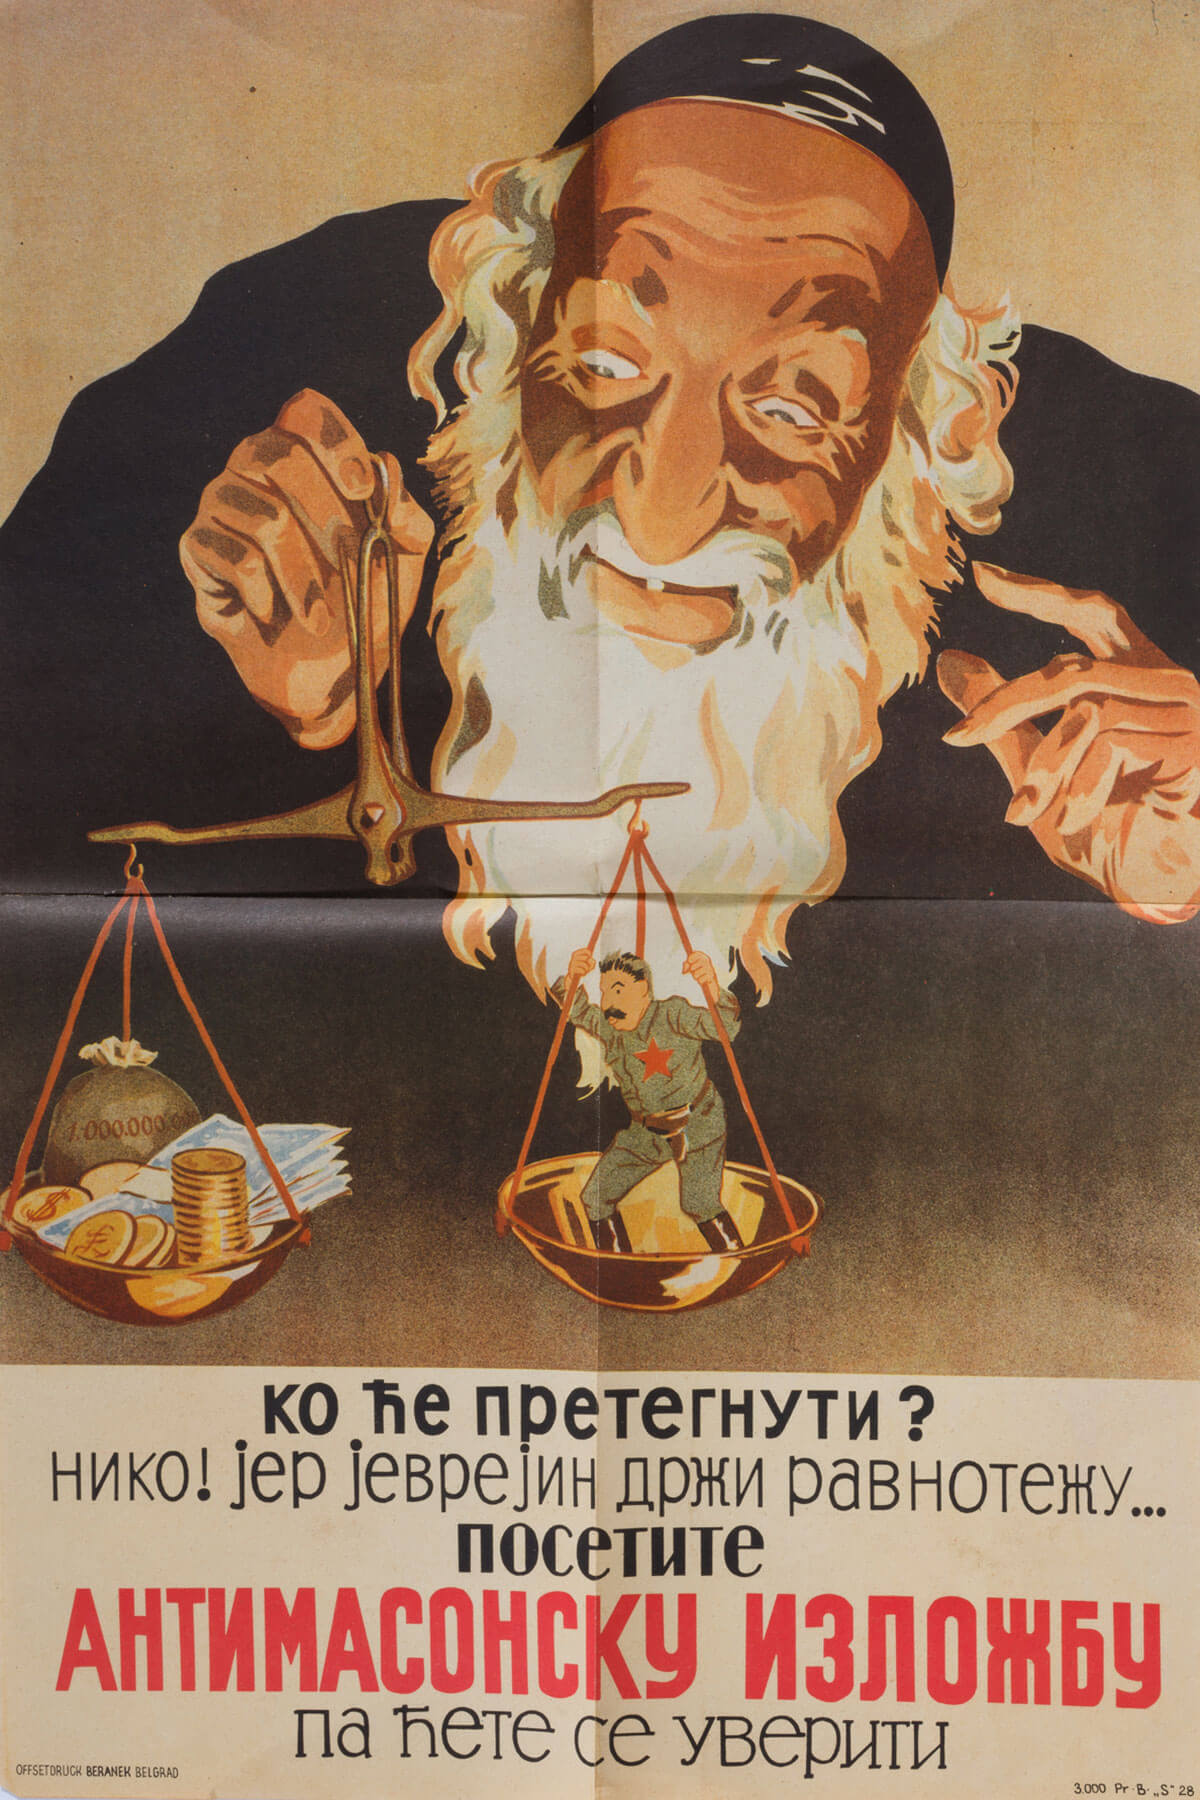 173. An Anti-Semitic Poster Published by the Yugoslav Nazi Party in Belgrade, Serbia